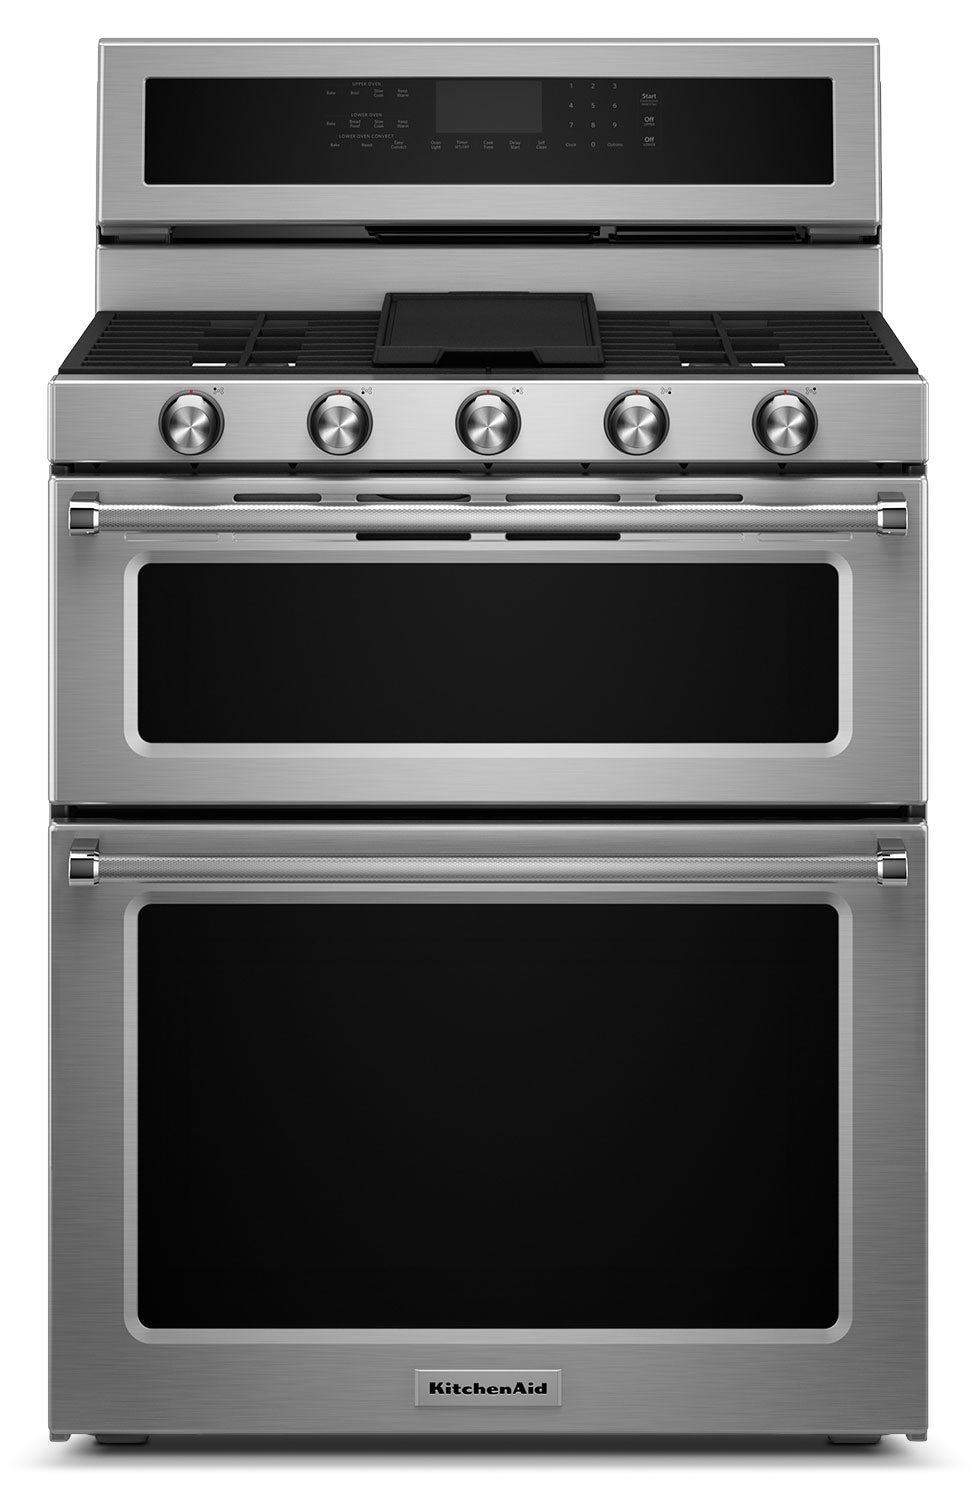 Cooking Products - KitchenAid 6.0 Cu. Ft. Dual-Fuel Double-Oven Range - Stainless Steel